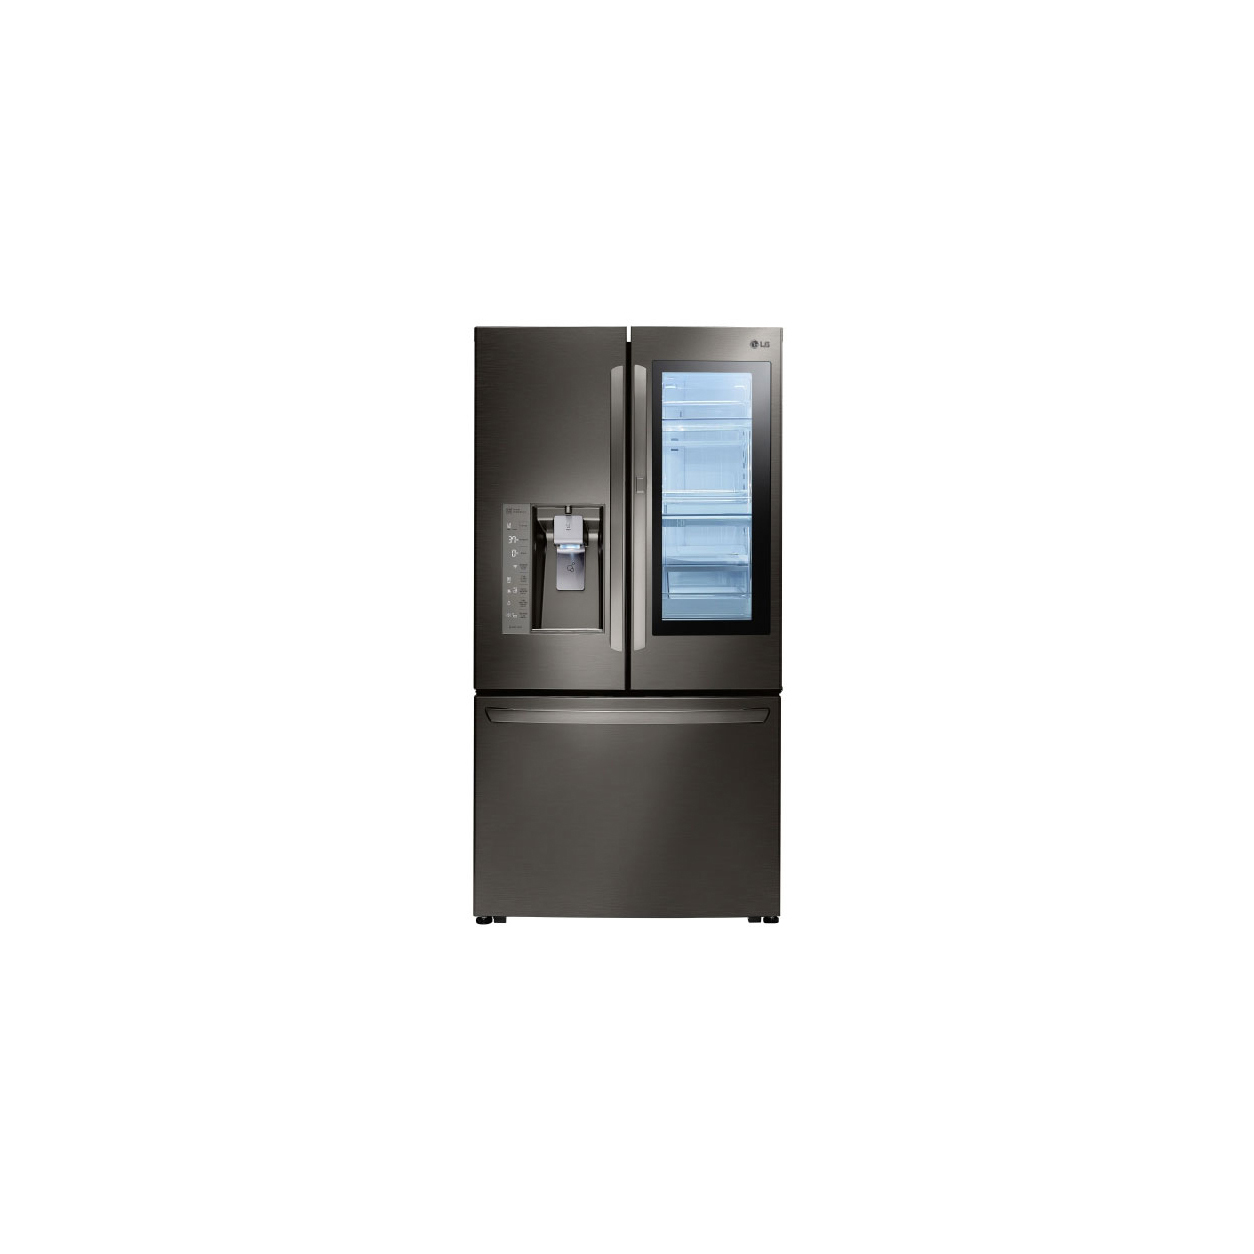 Ge profile series energy star 278 cu ft lg instaview door in ge profile series energy star 278 cu ft lg instaview door in door refrigerator lfxc24796d review price and features pros and cons of lg instaview rubansaba